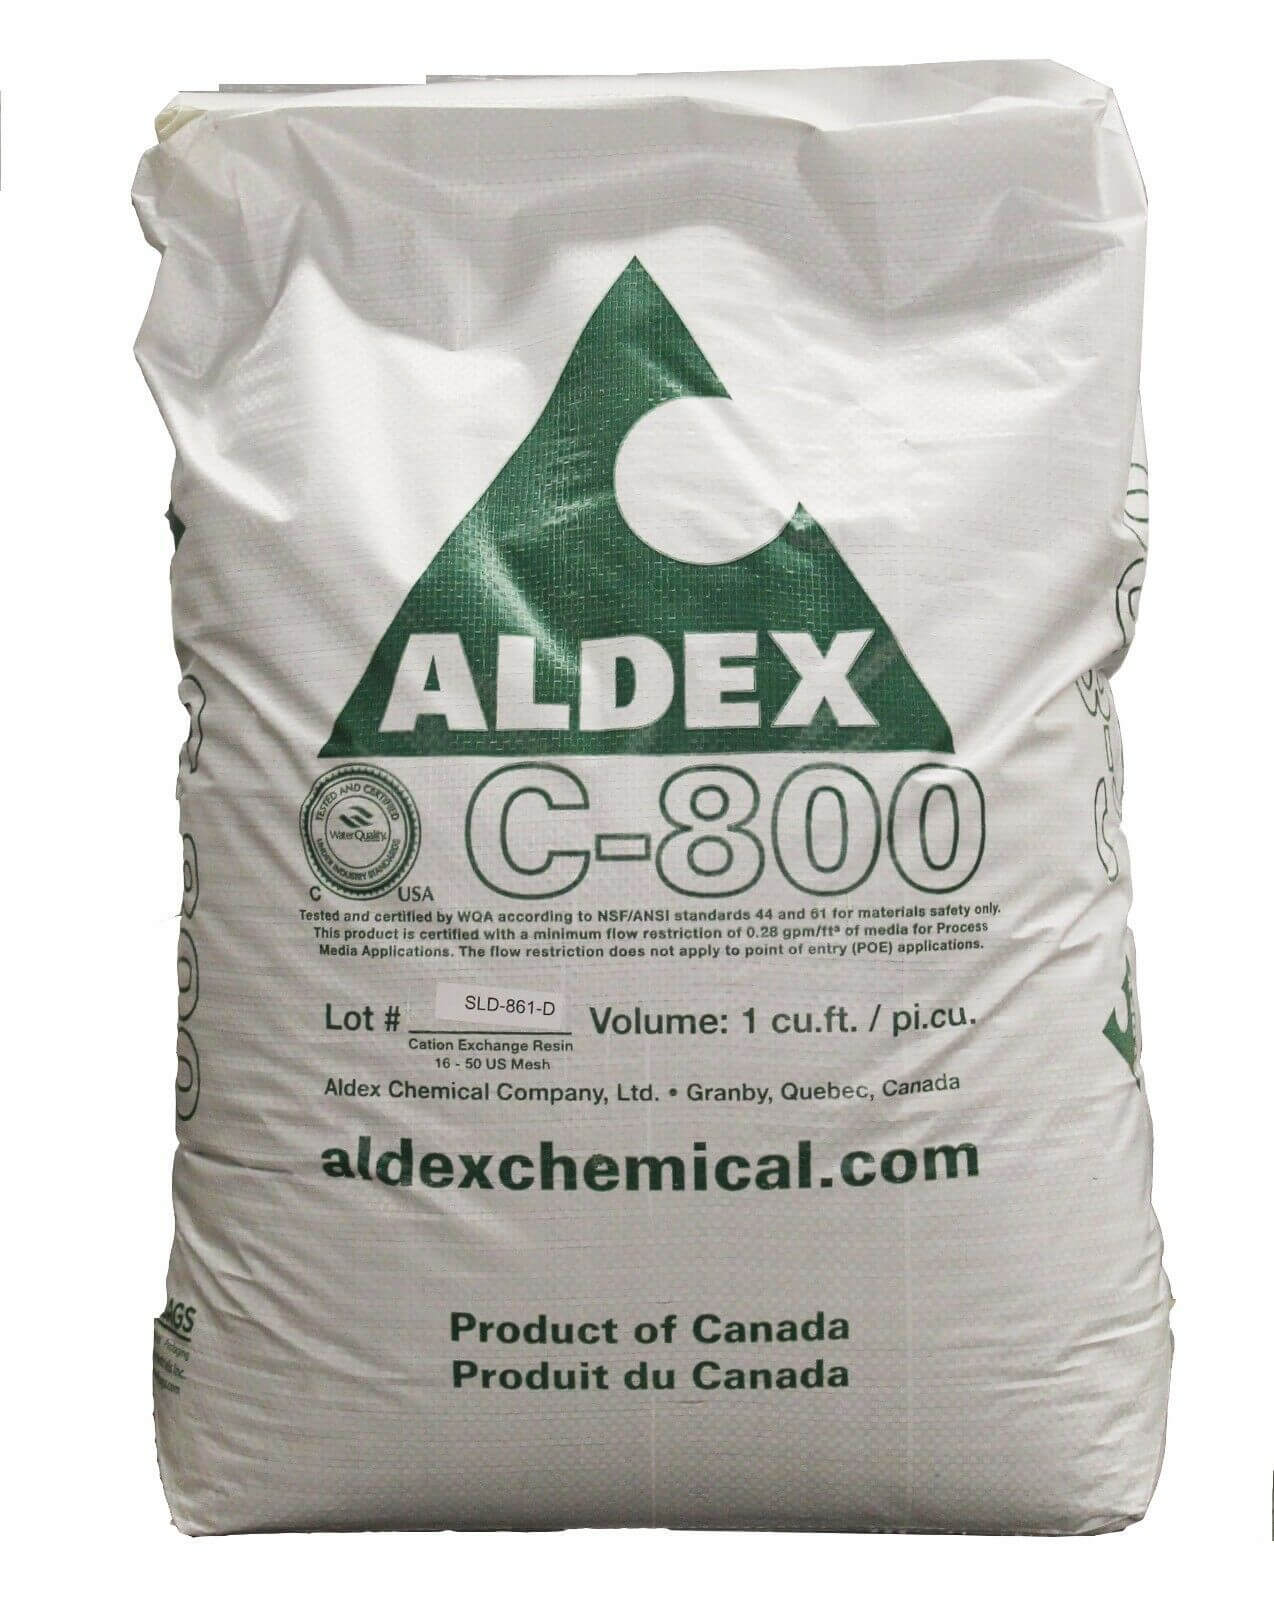 Alldex 800 resin